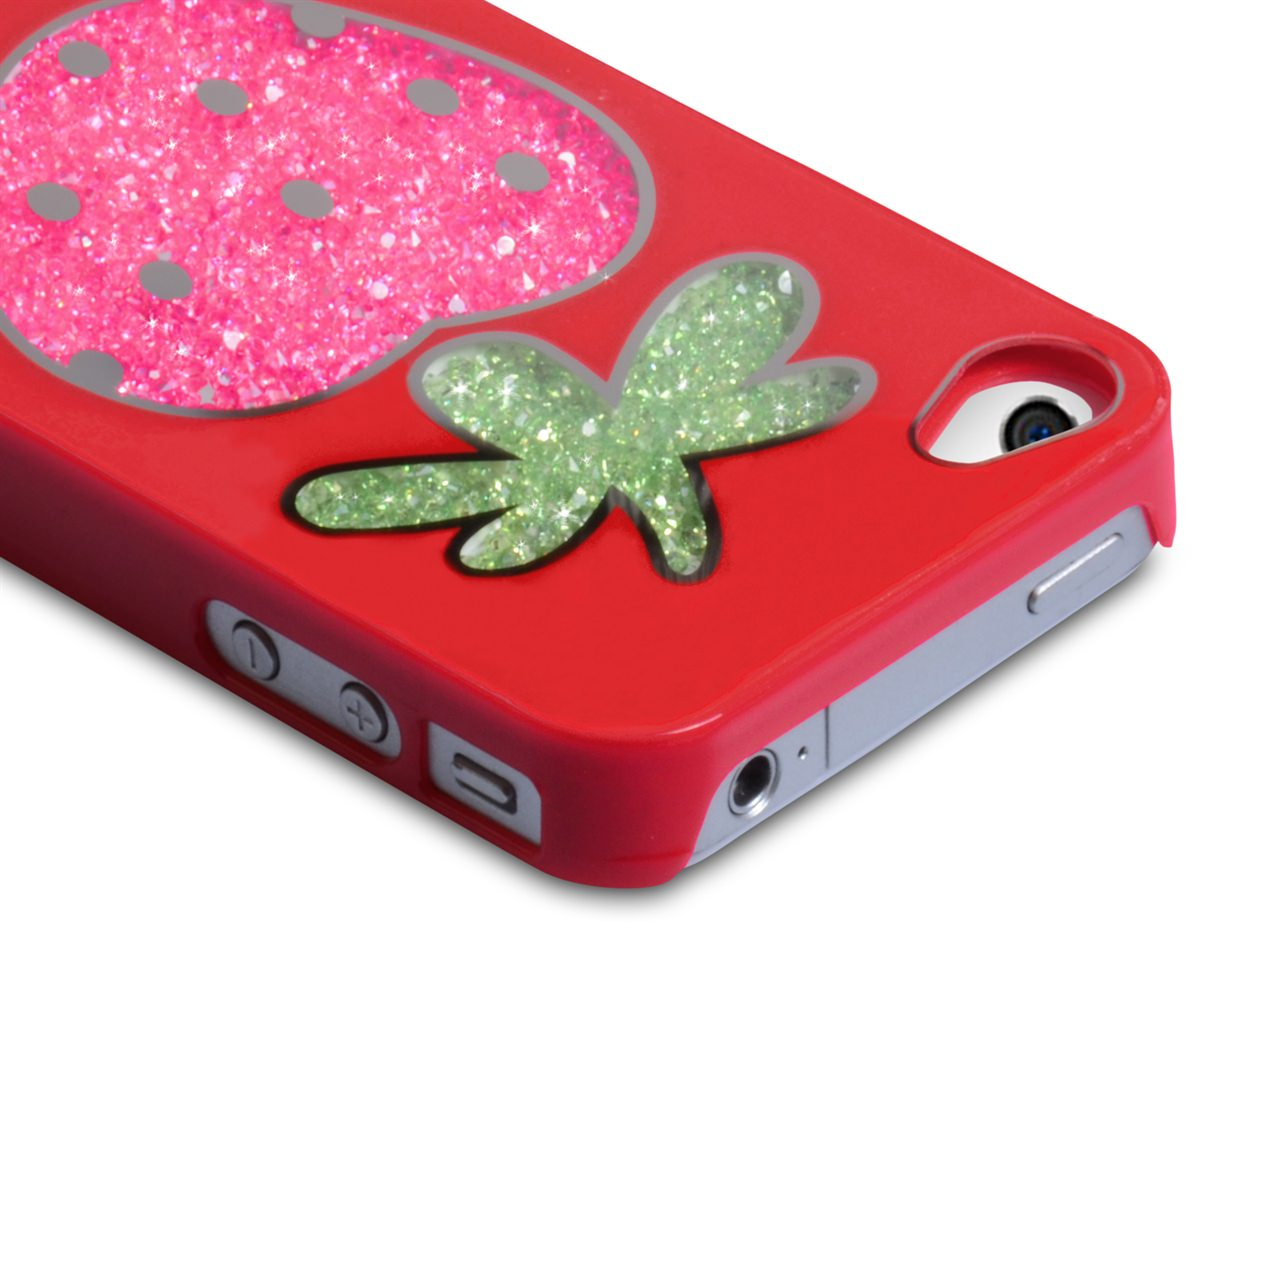 YouSave Accessories iPhone 4 / 4S Strawberry Bling Hard Case - Red